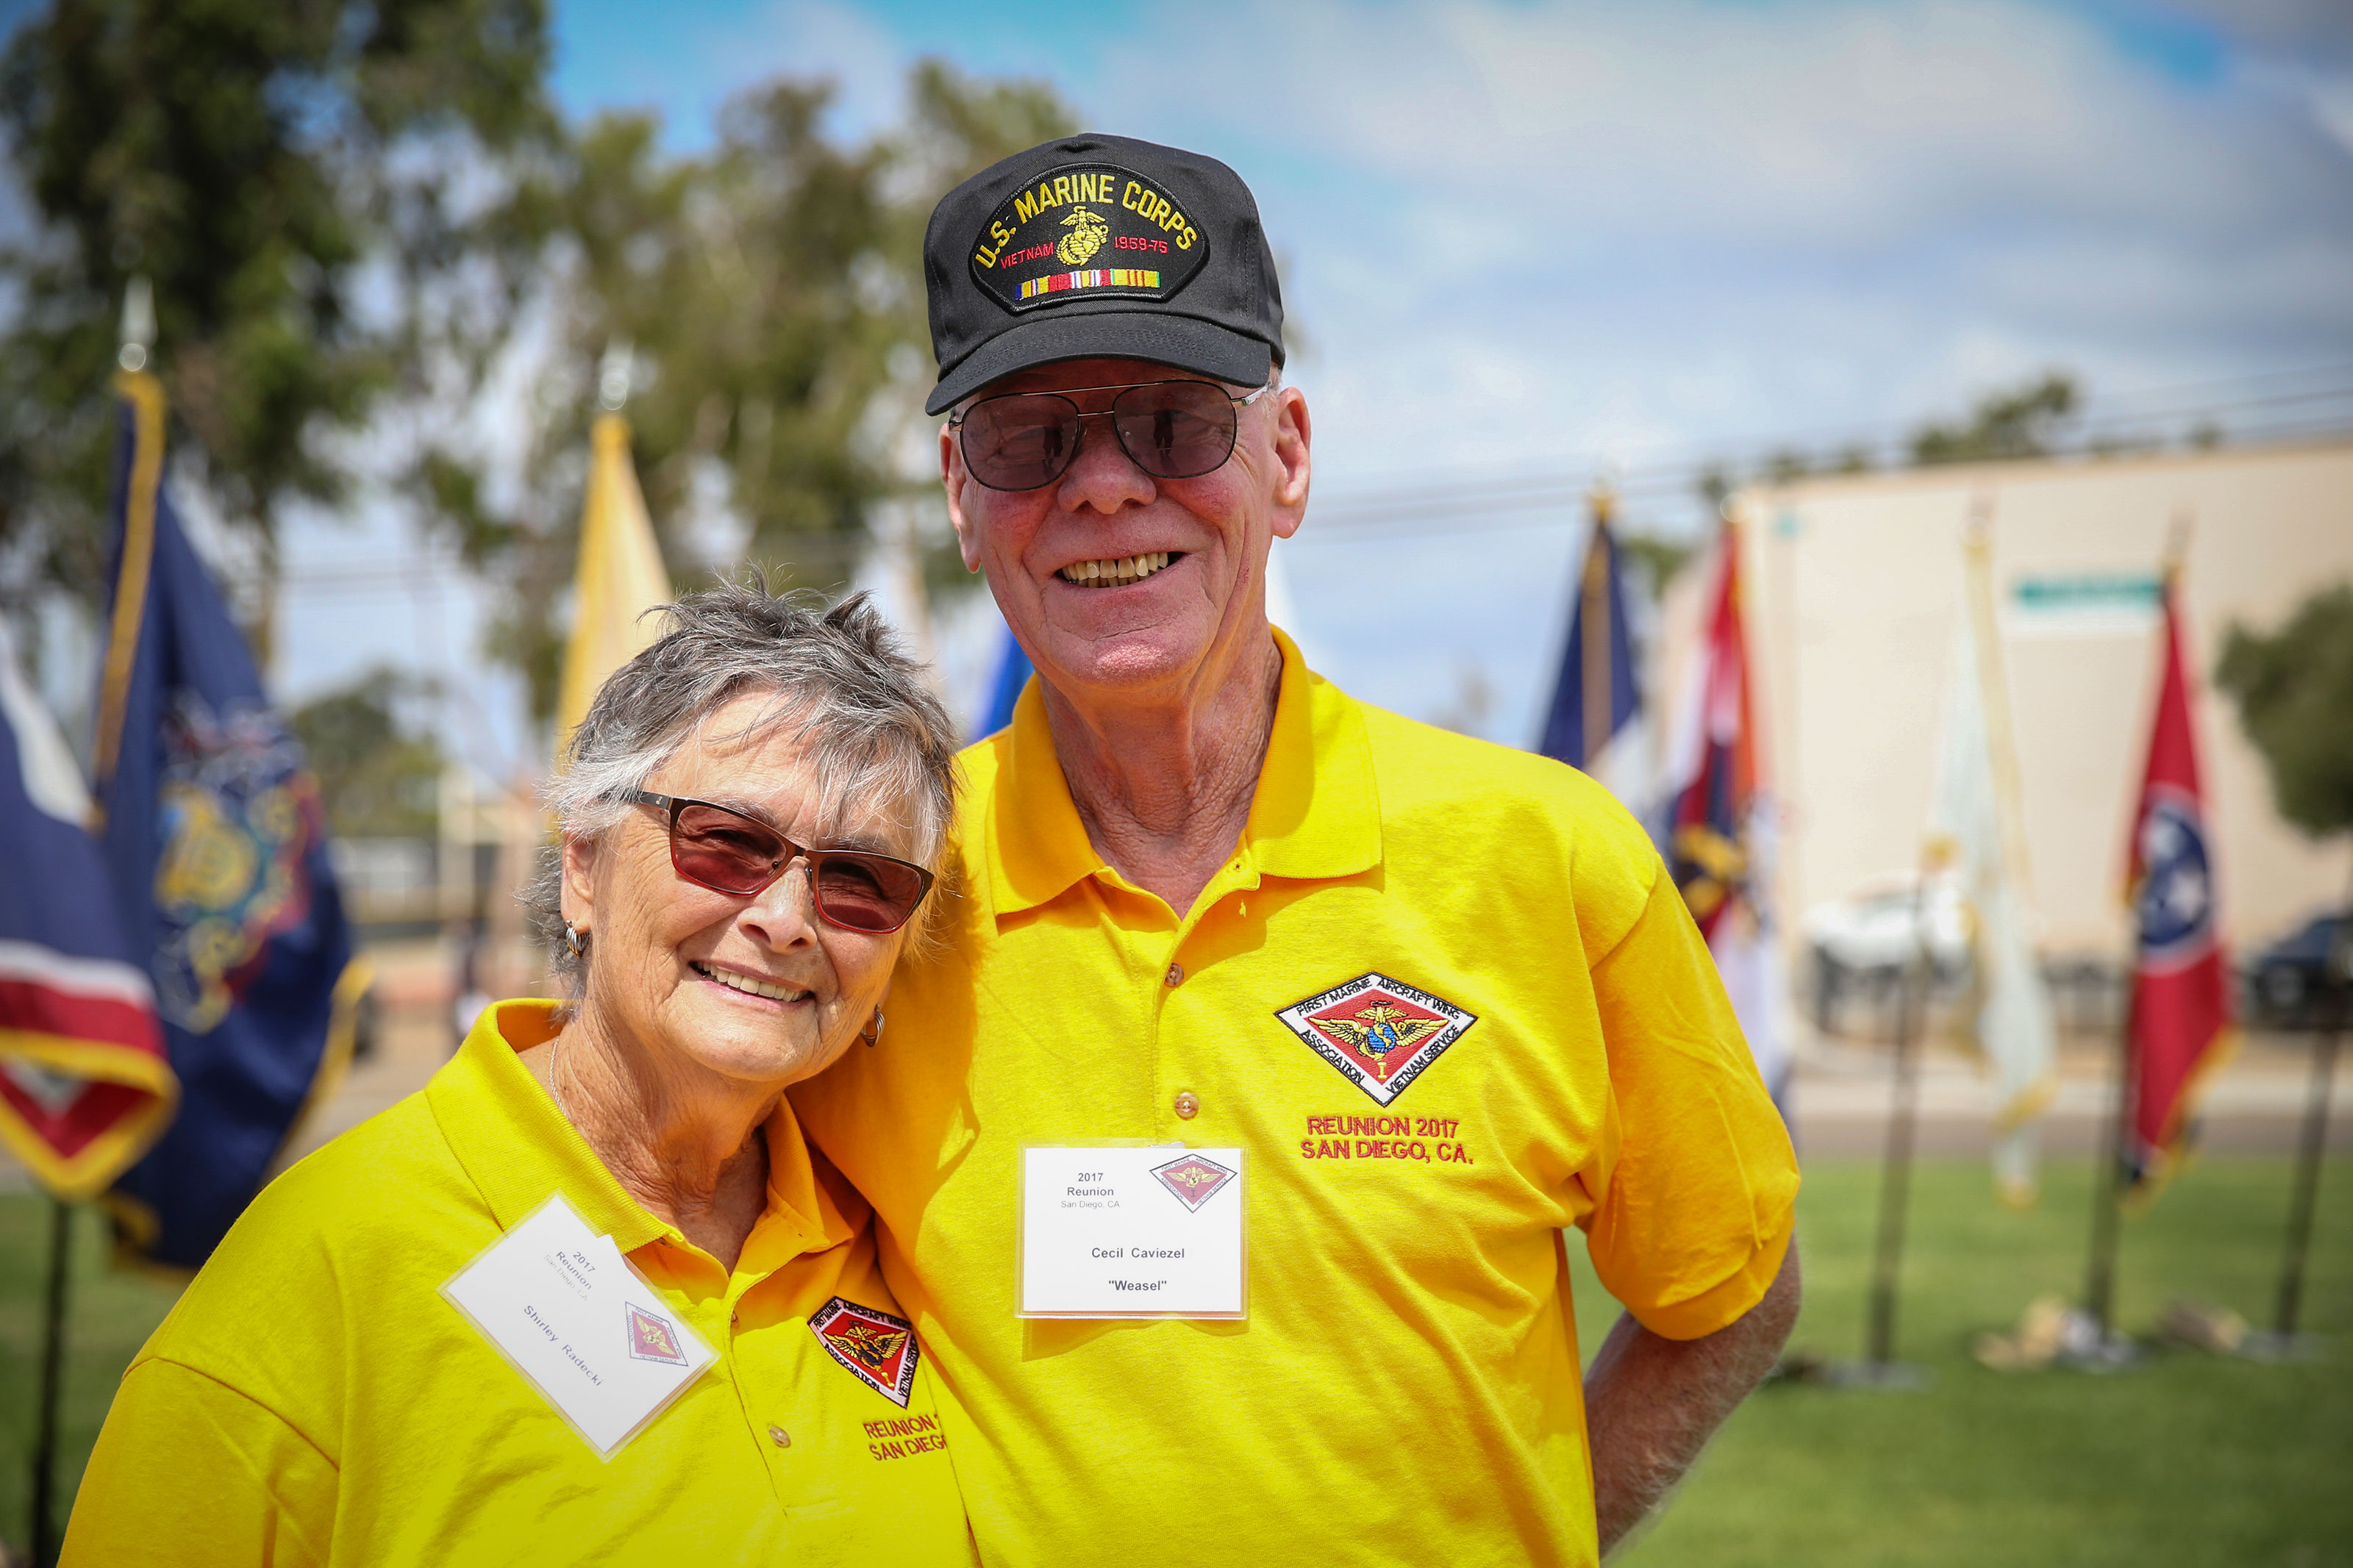 Retired veteran Cecil Caviezel and his wife, Shirley, pose for a photo at Marine Corps Air Station Miramar, California. (U.S. Marine Corps/Andrianna Talbot)